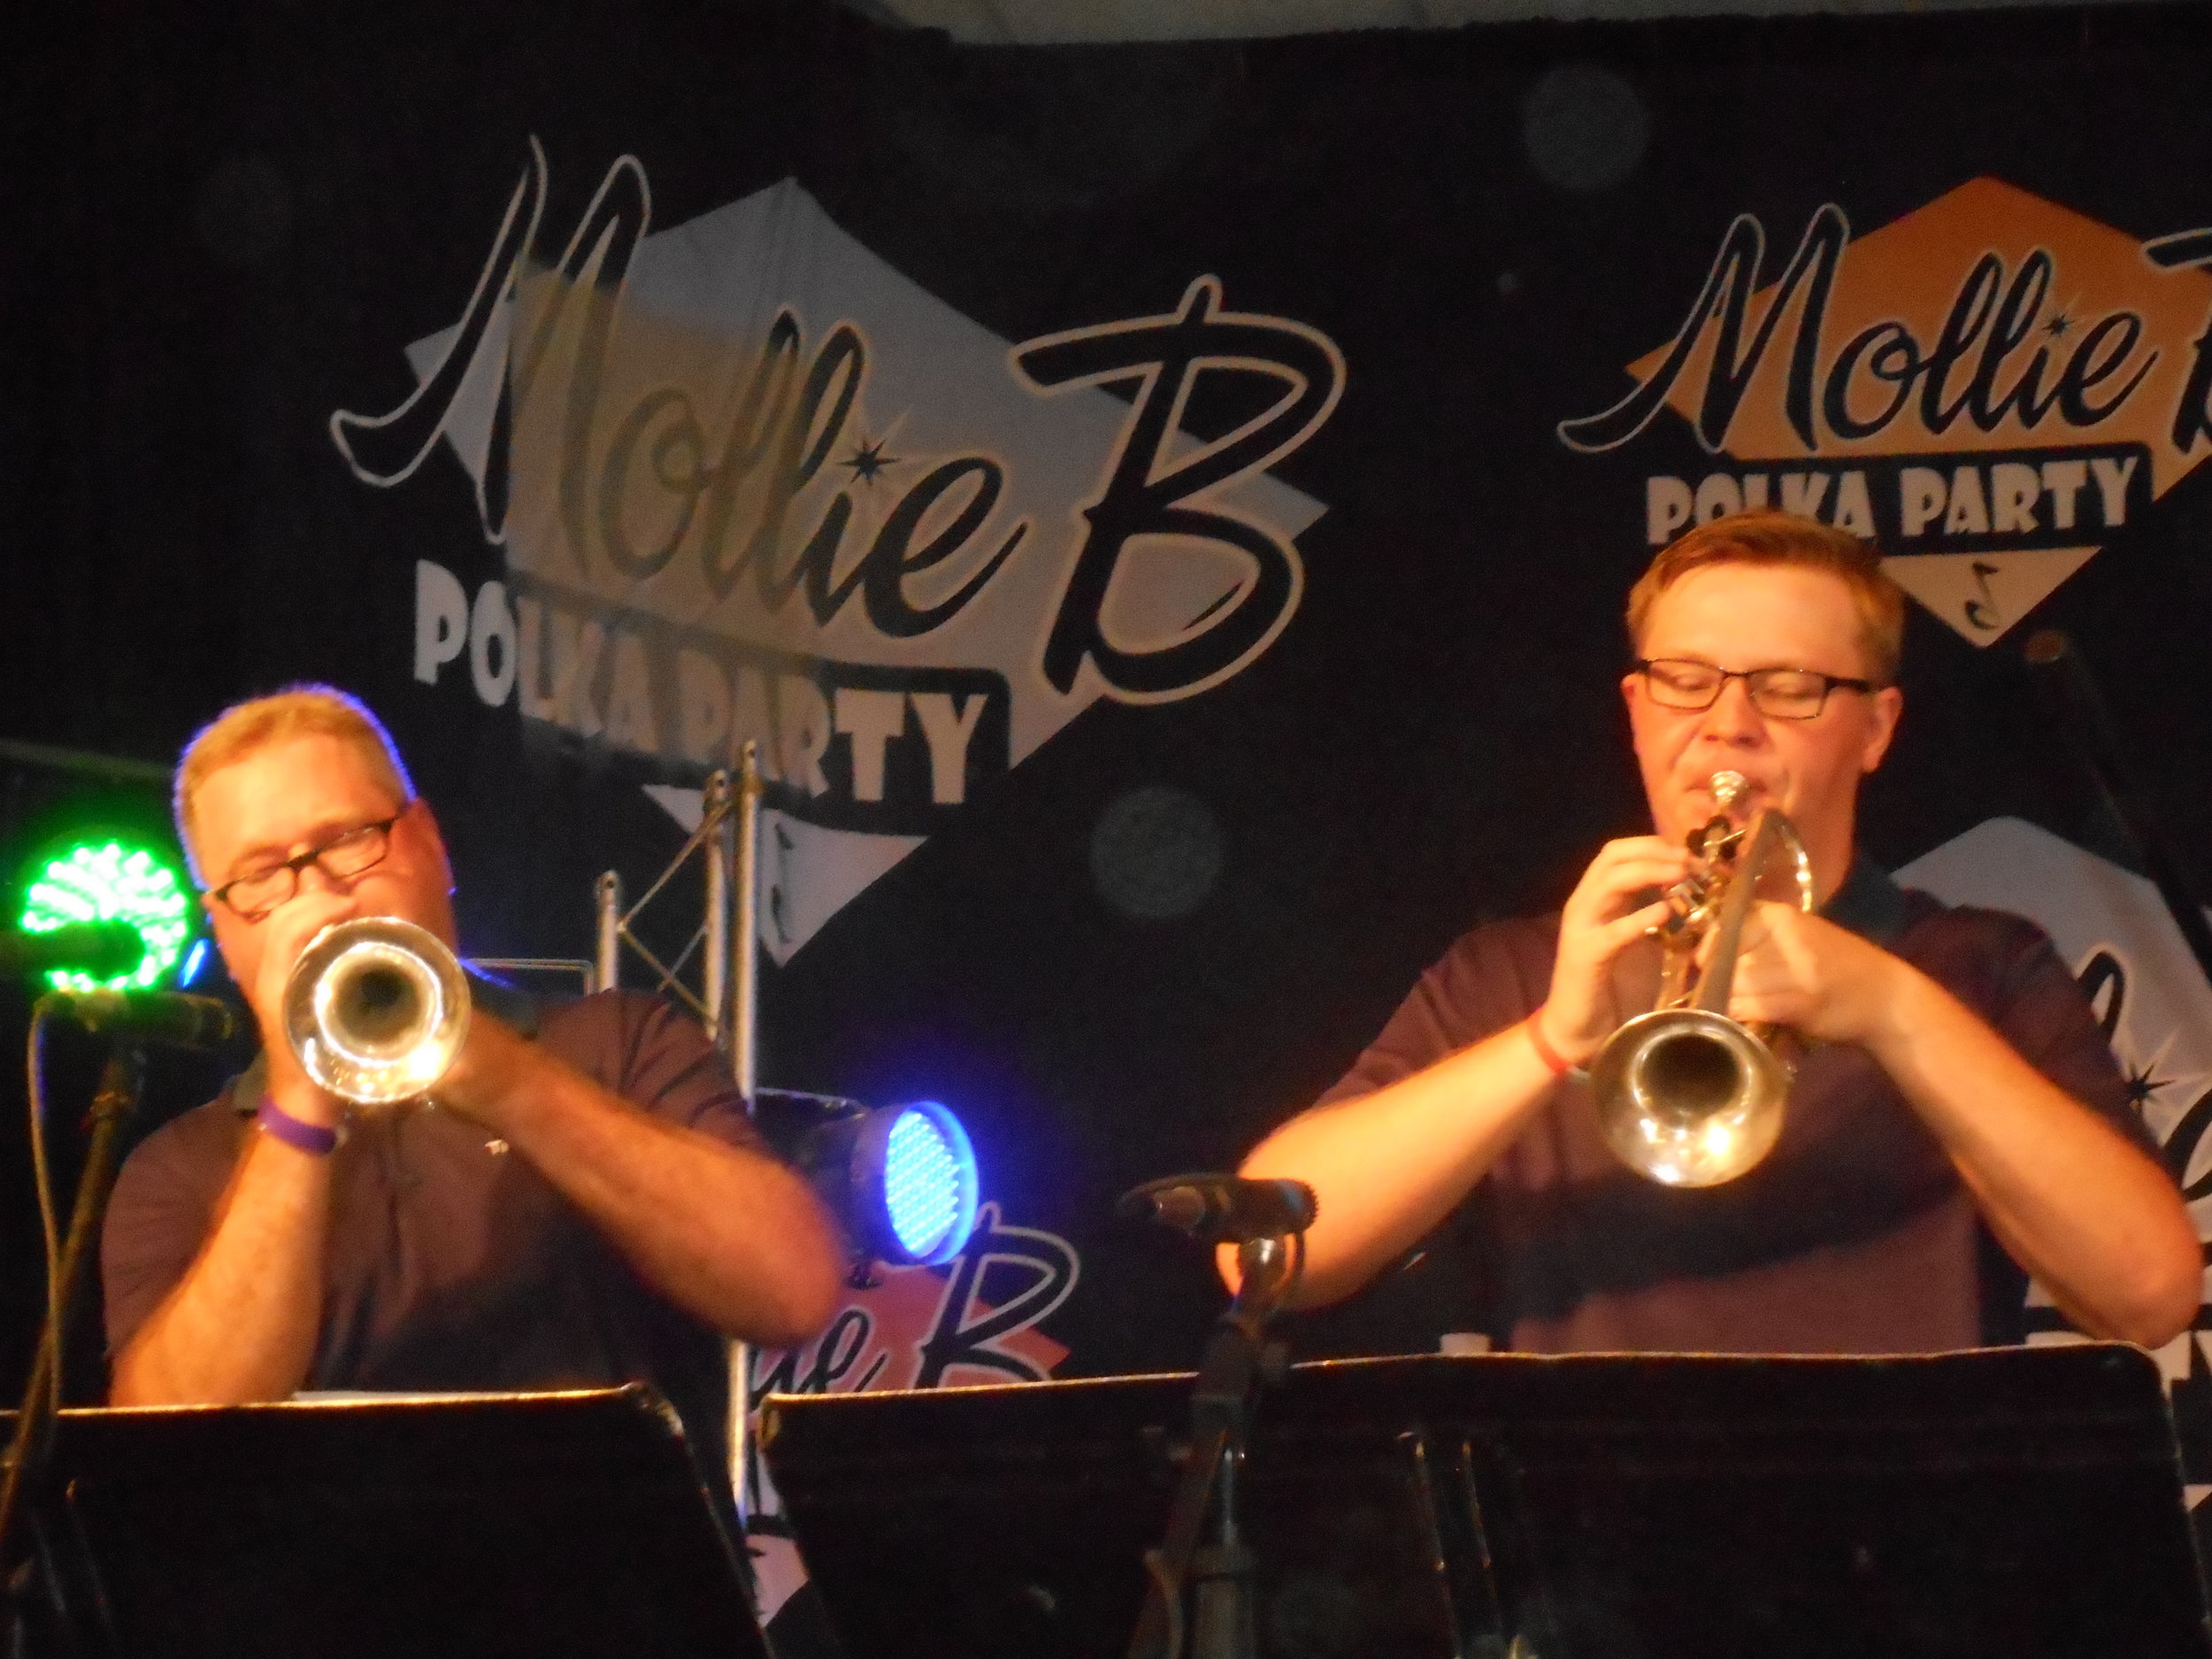 DZ with his son, Josh in CATS, at Mollie B Polka Party taping, 2016